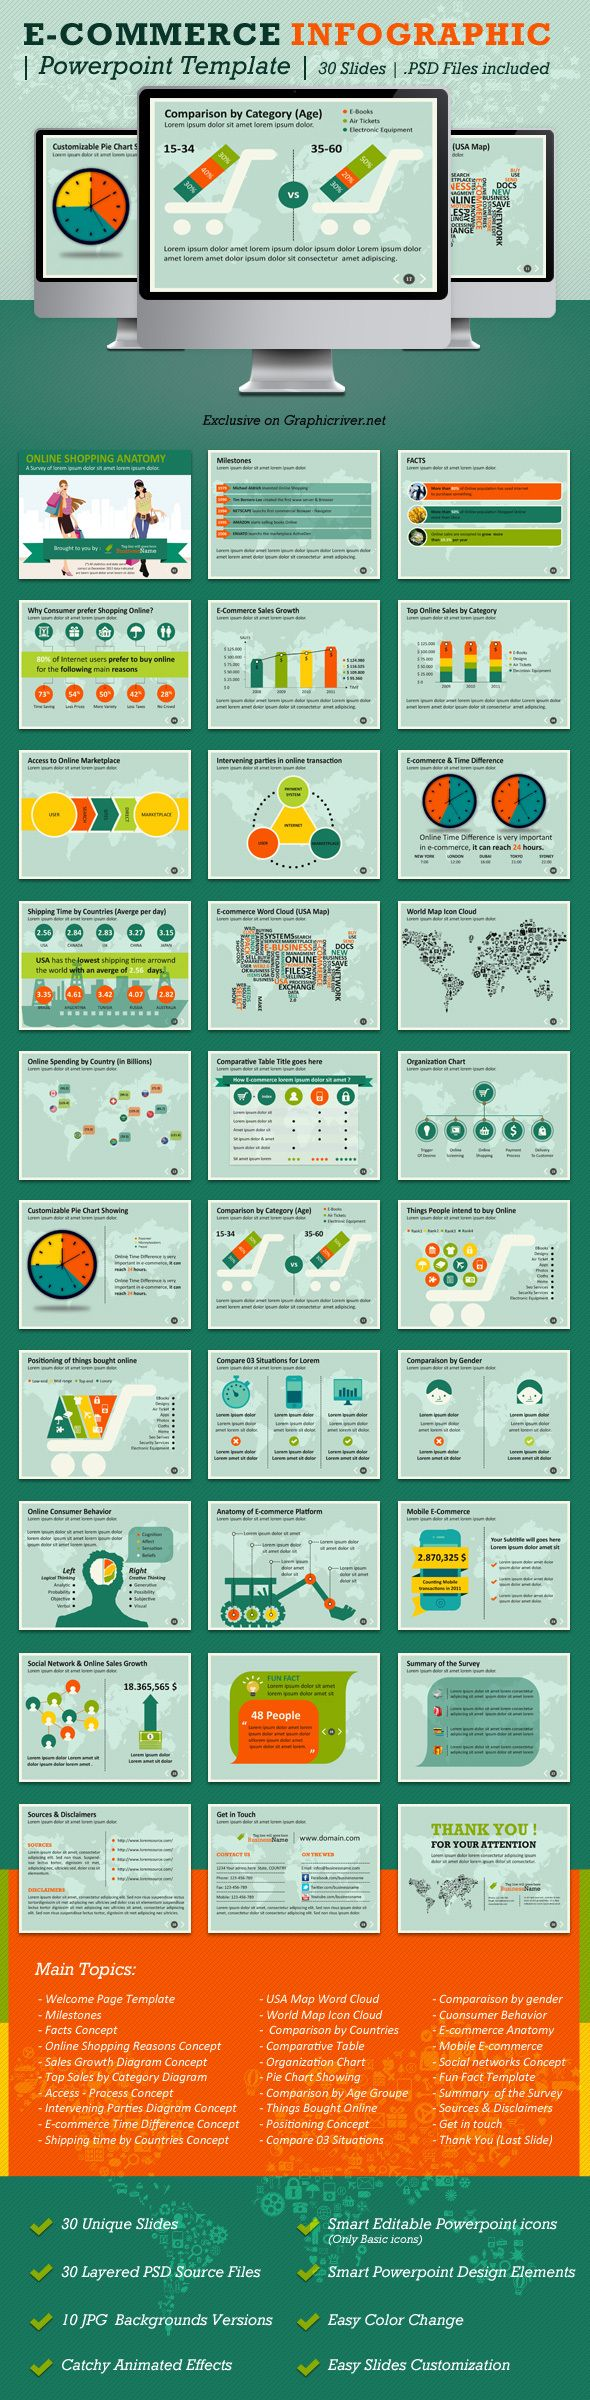 E-Commerce Infographic Powerpoint Template by kh2838 Studio, via Behance - by Bootcamp Media